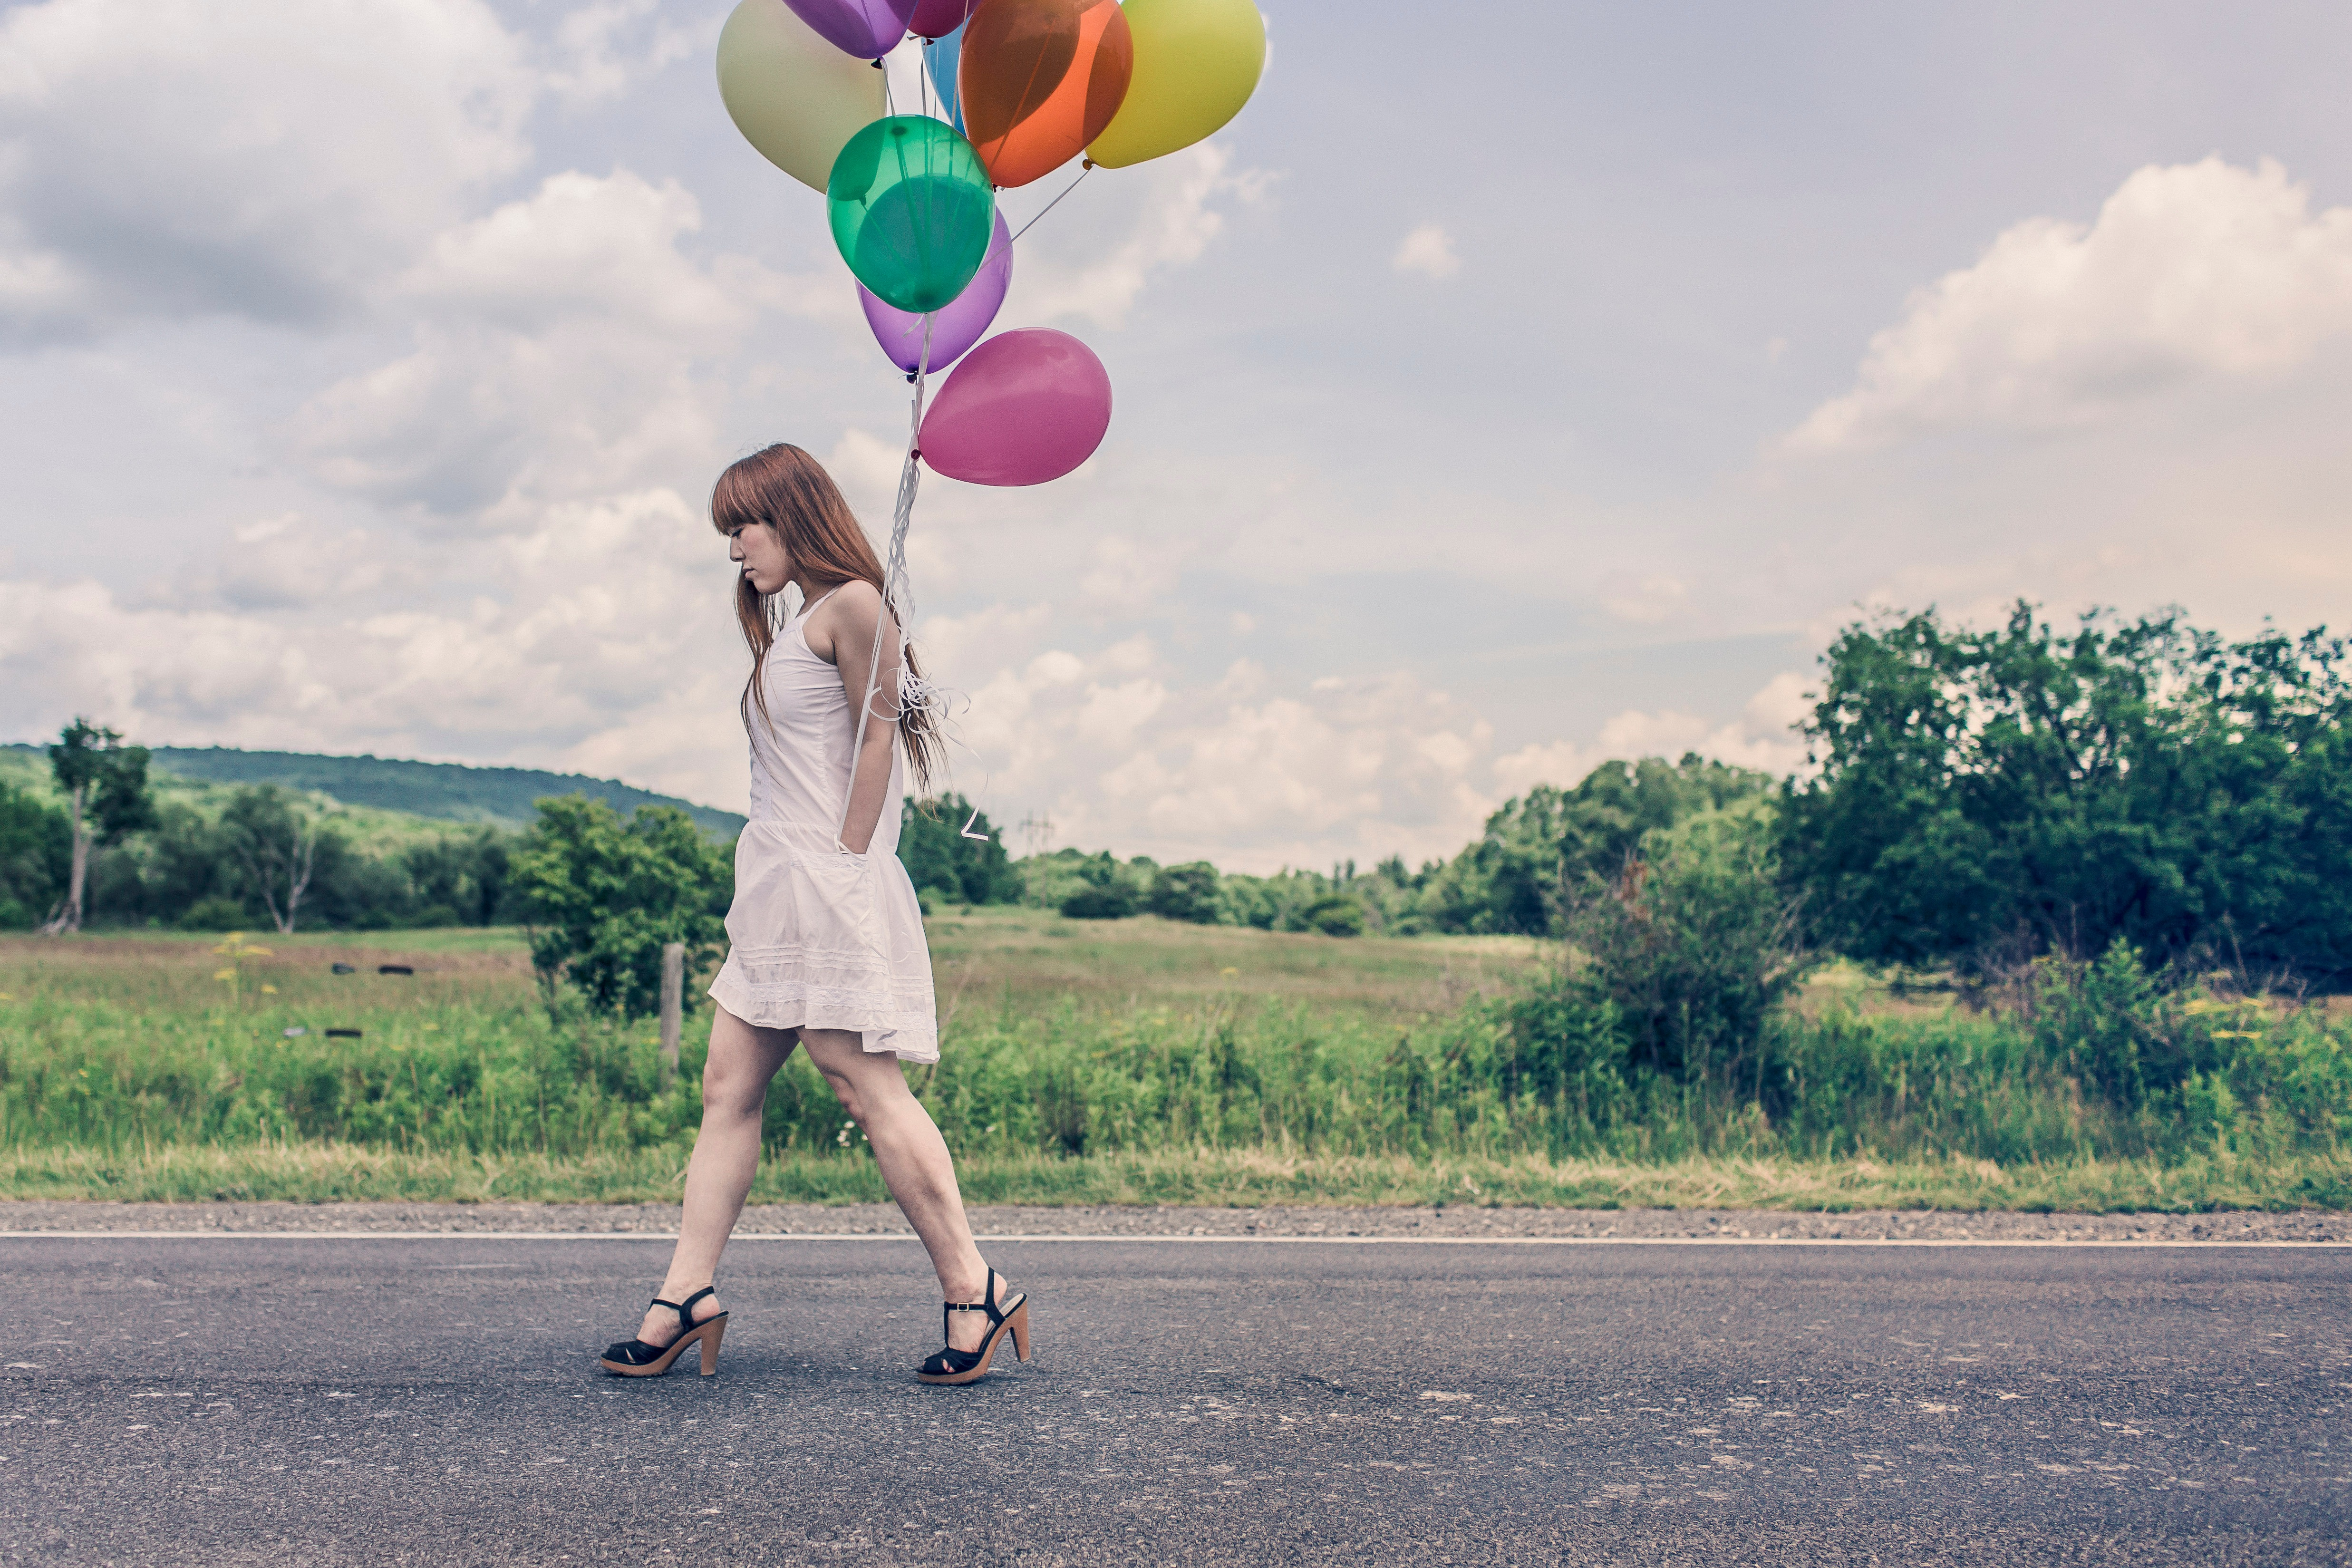 Free download high resolution image - free image free photo free stock image public domain picture -Fille adolescente tenant des ballons